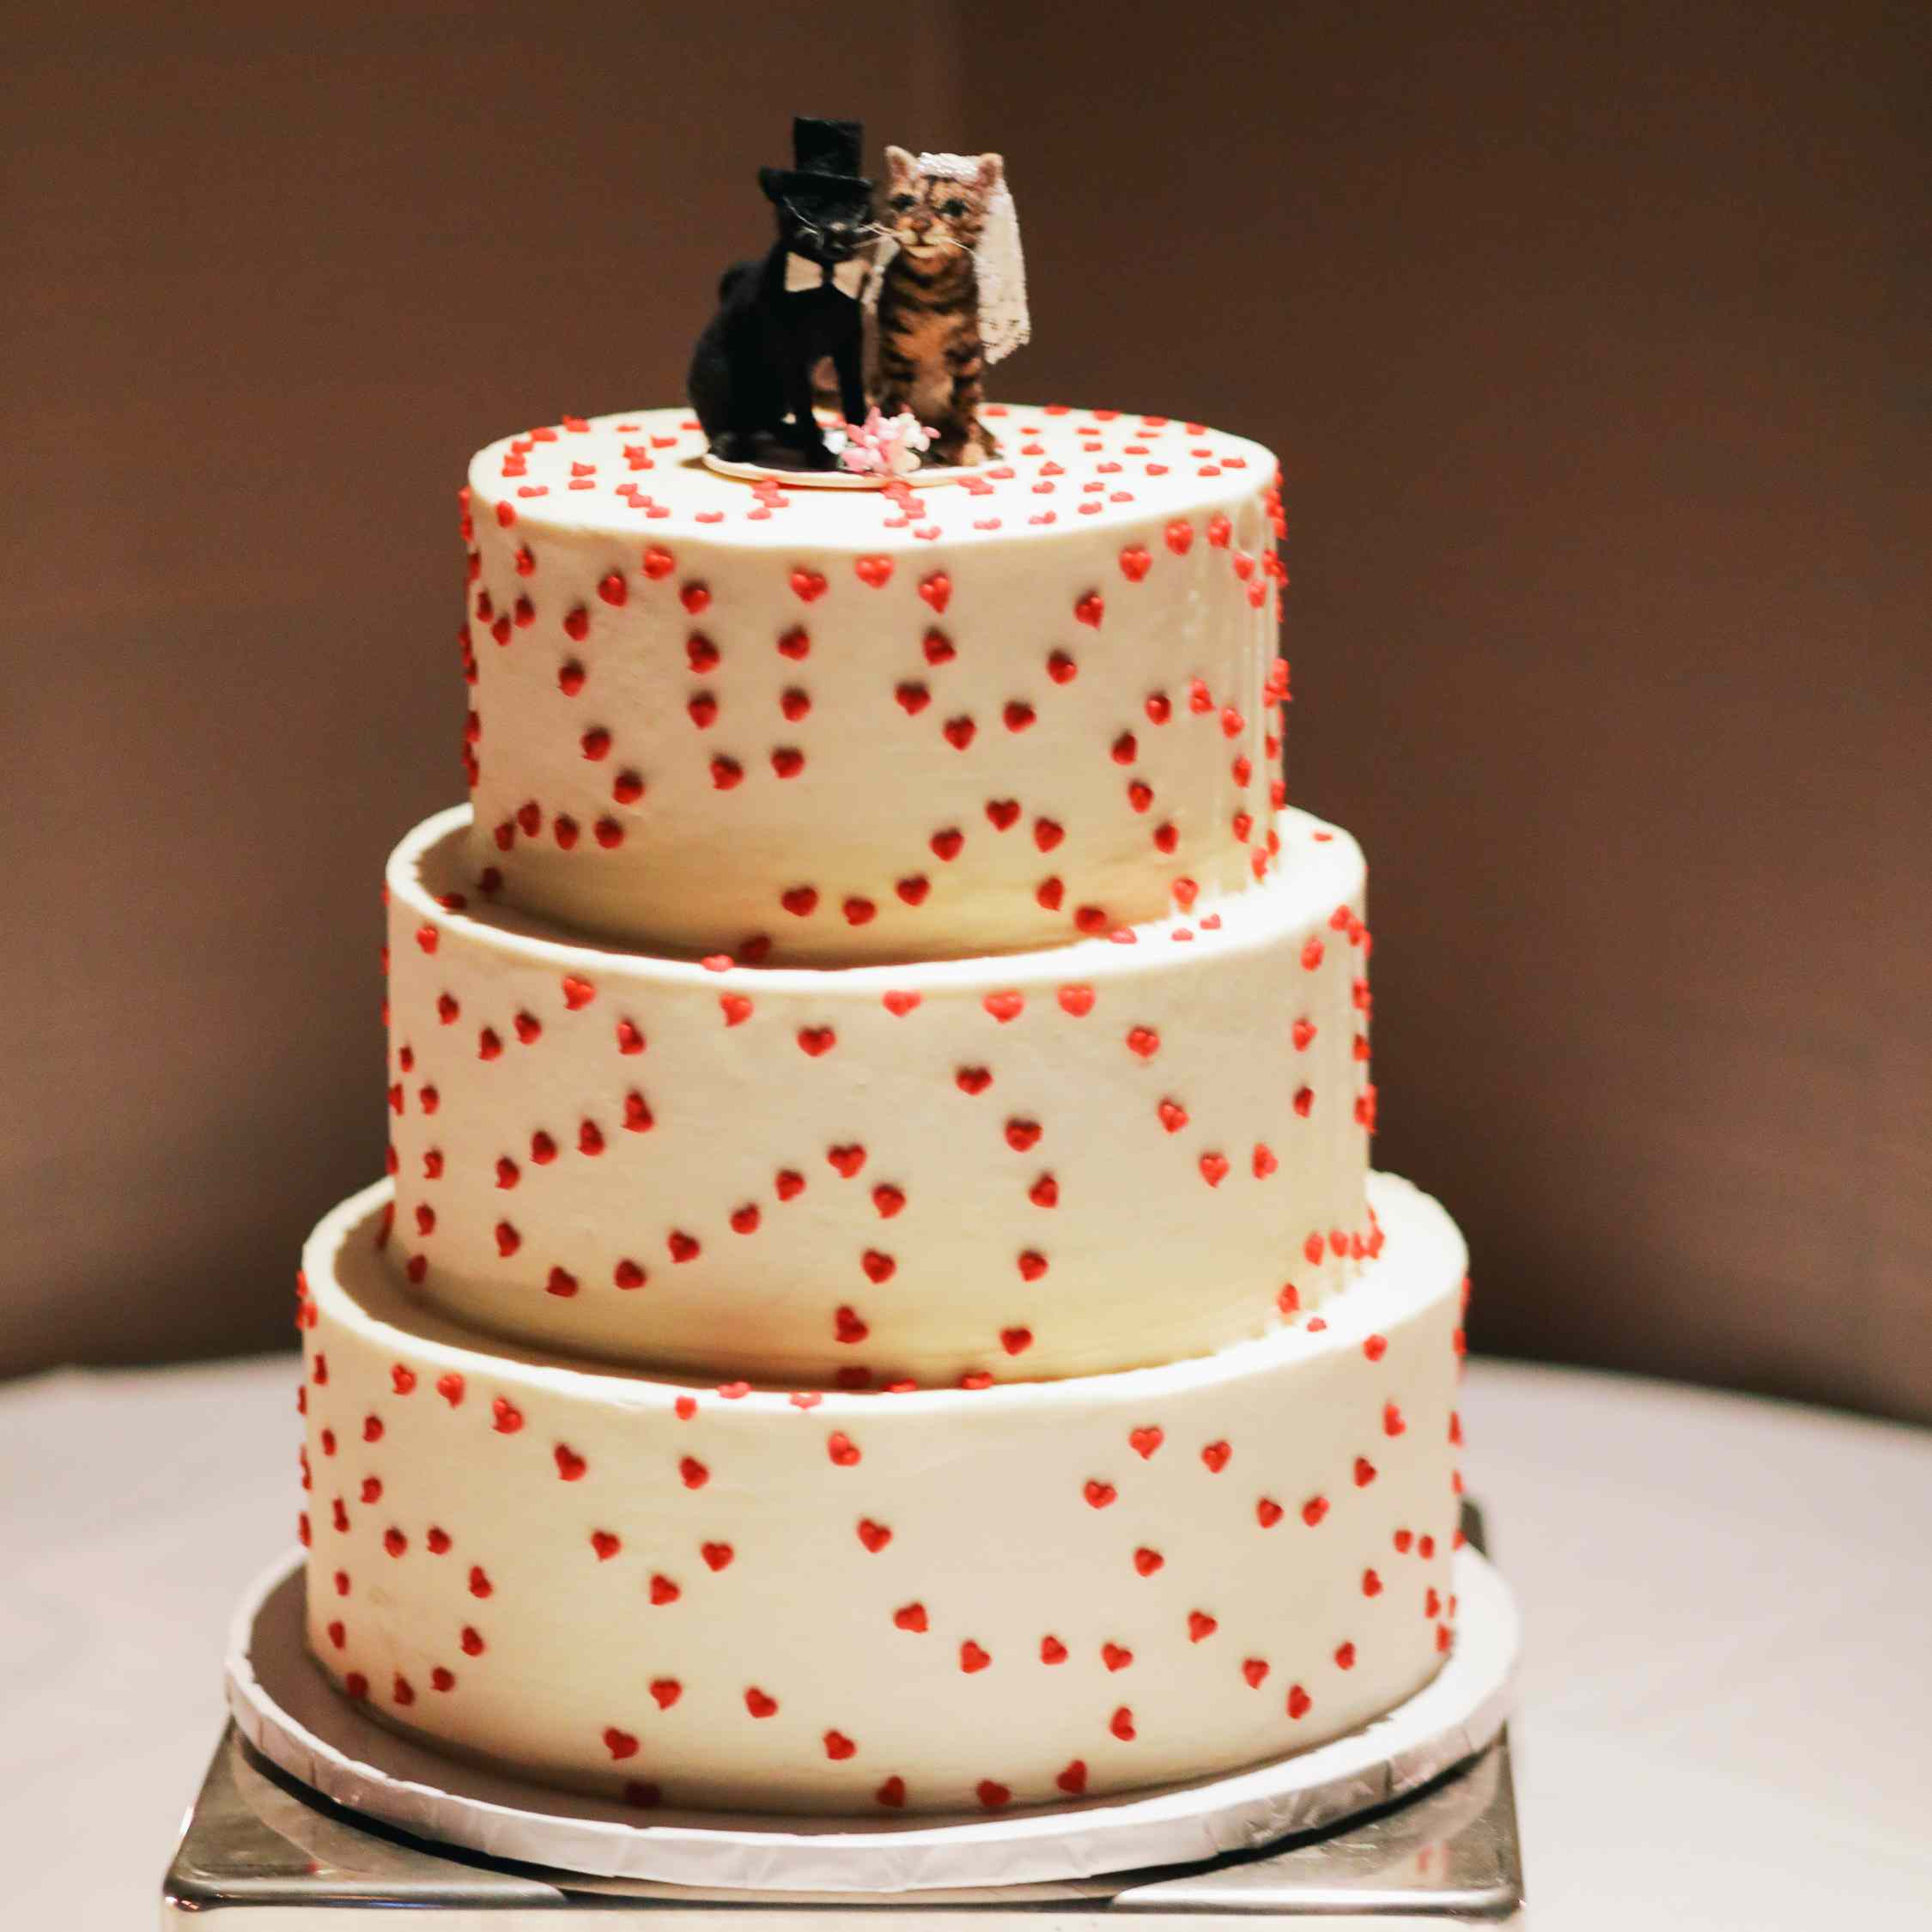 Three-tiered white wedding cake with tiny red fondant hearts and cat cake toppers